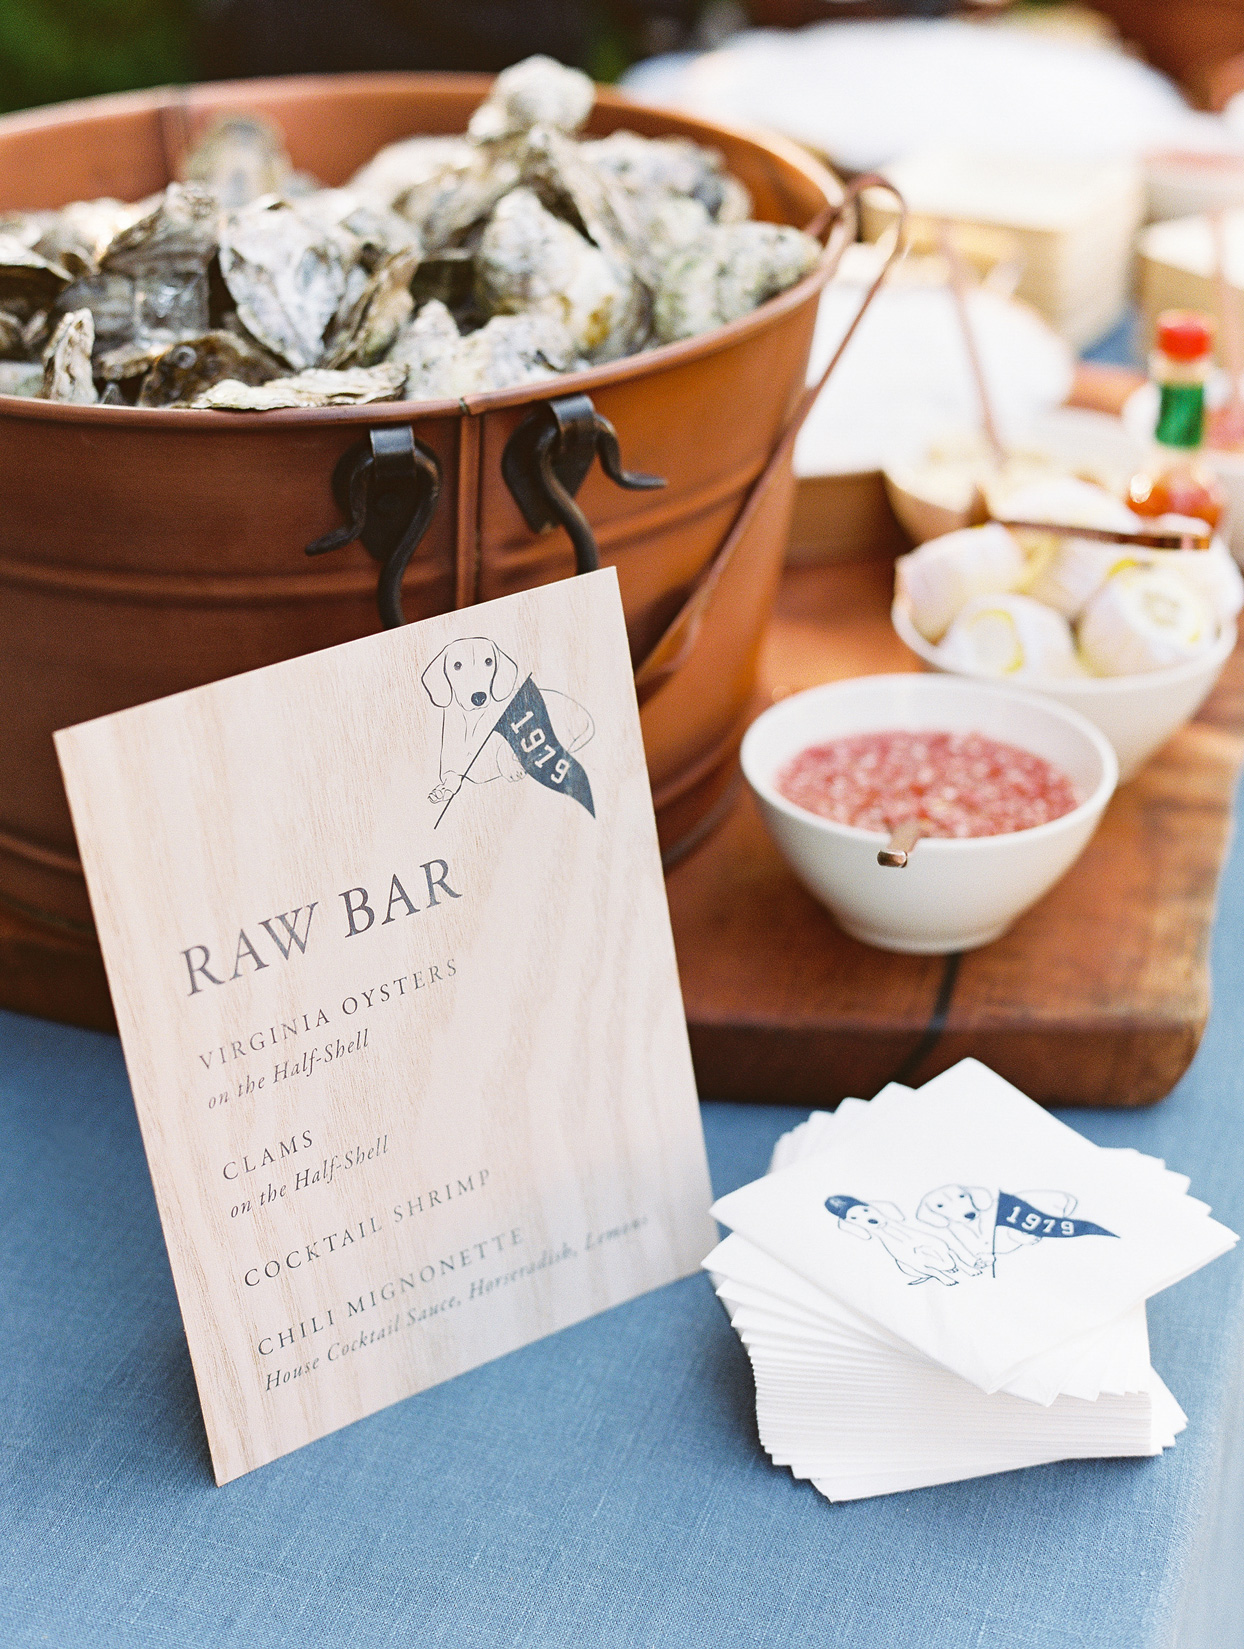 Raw bar anniversary party menu